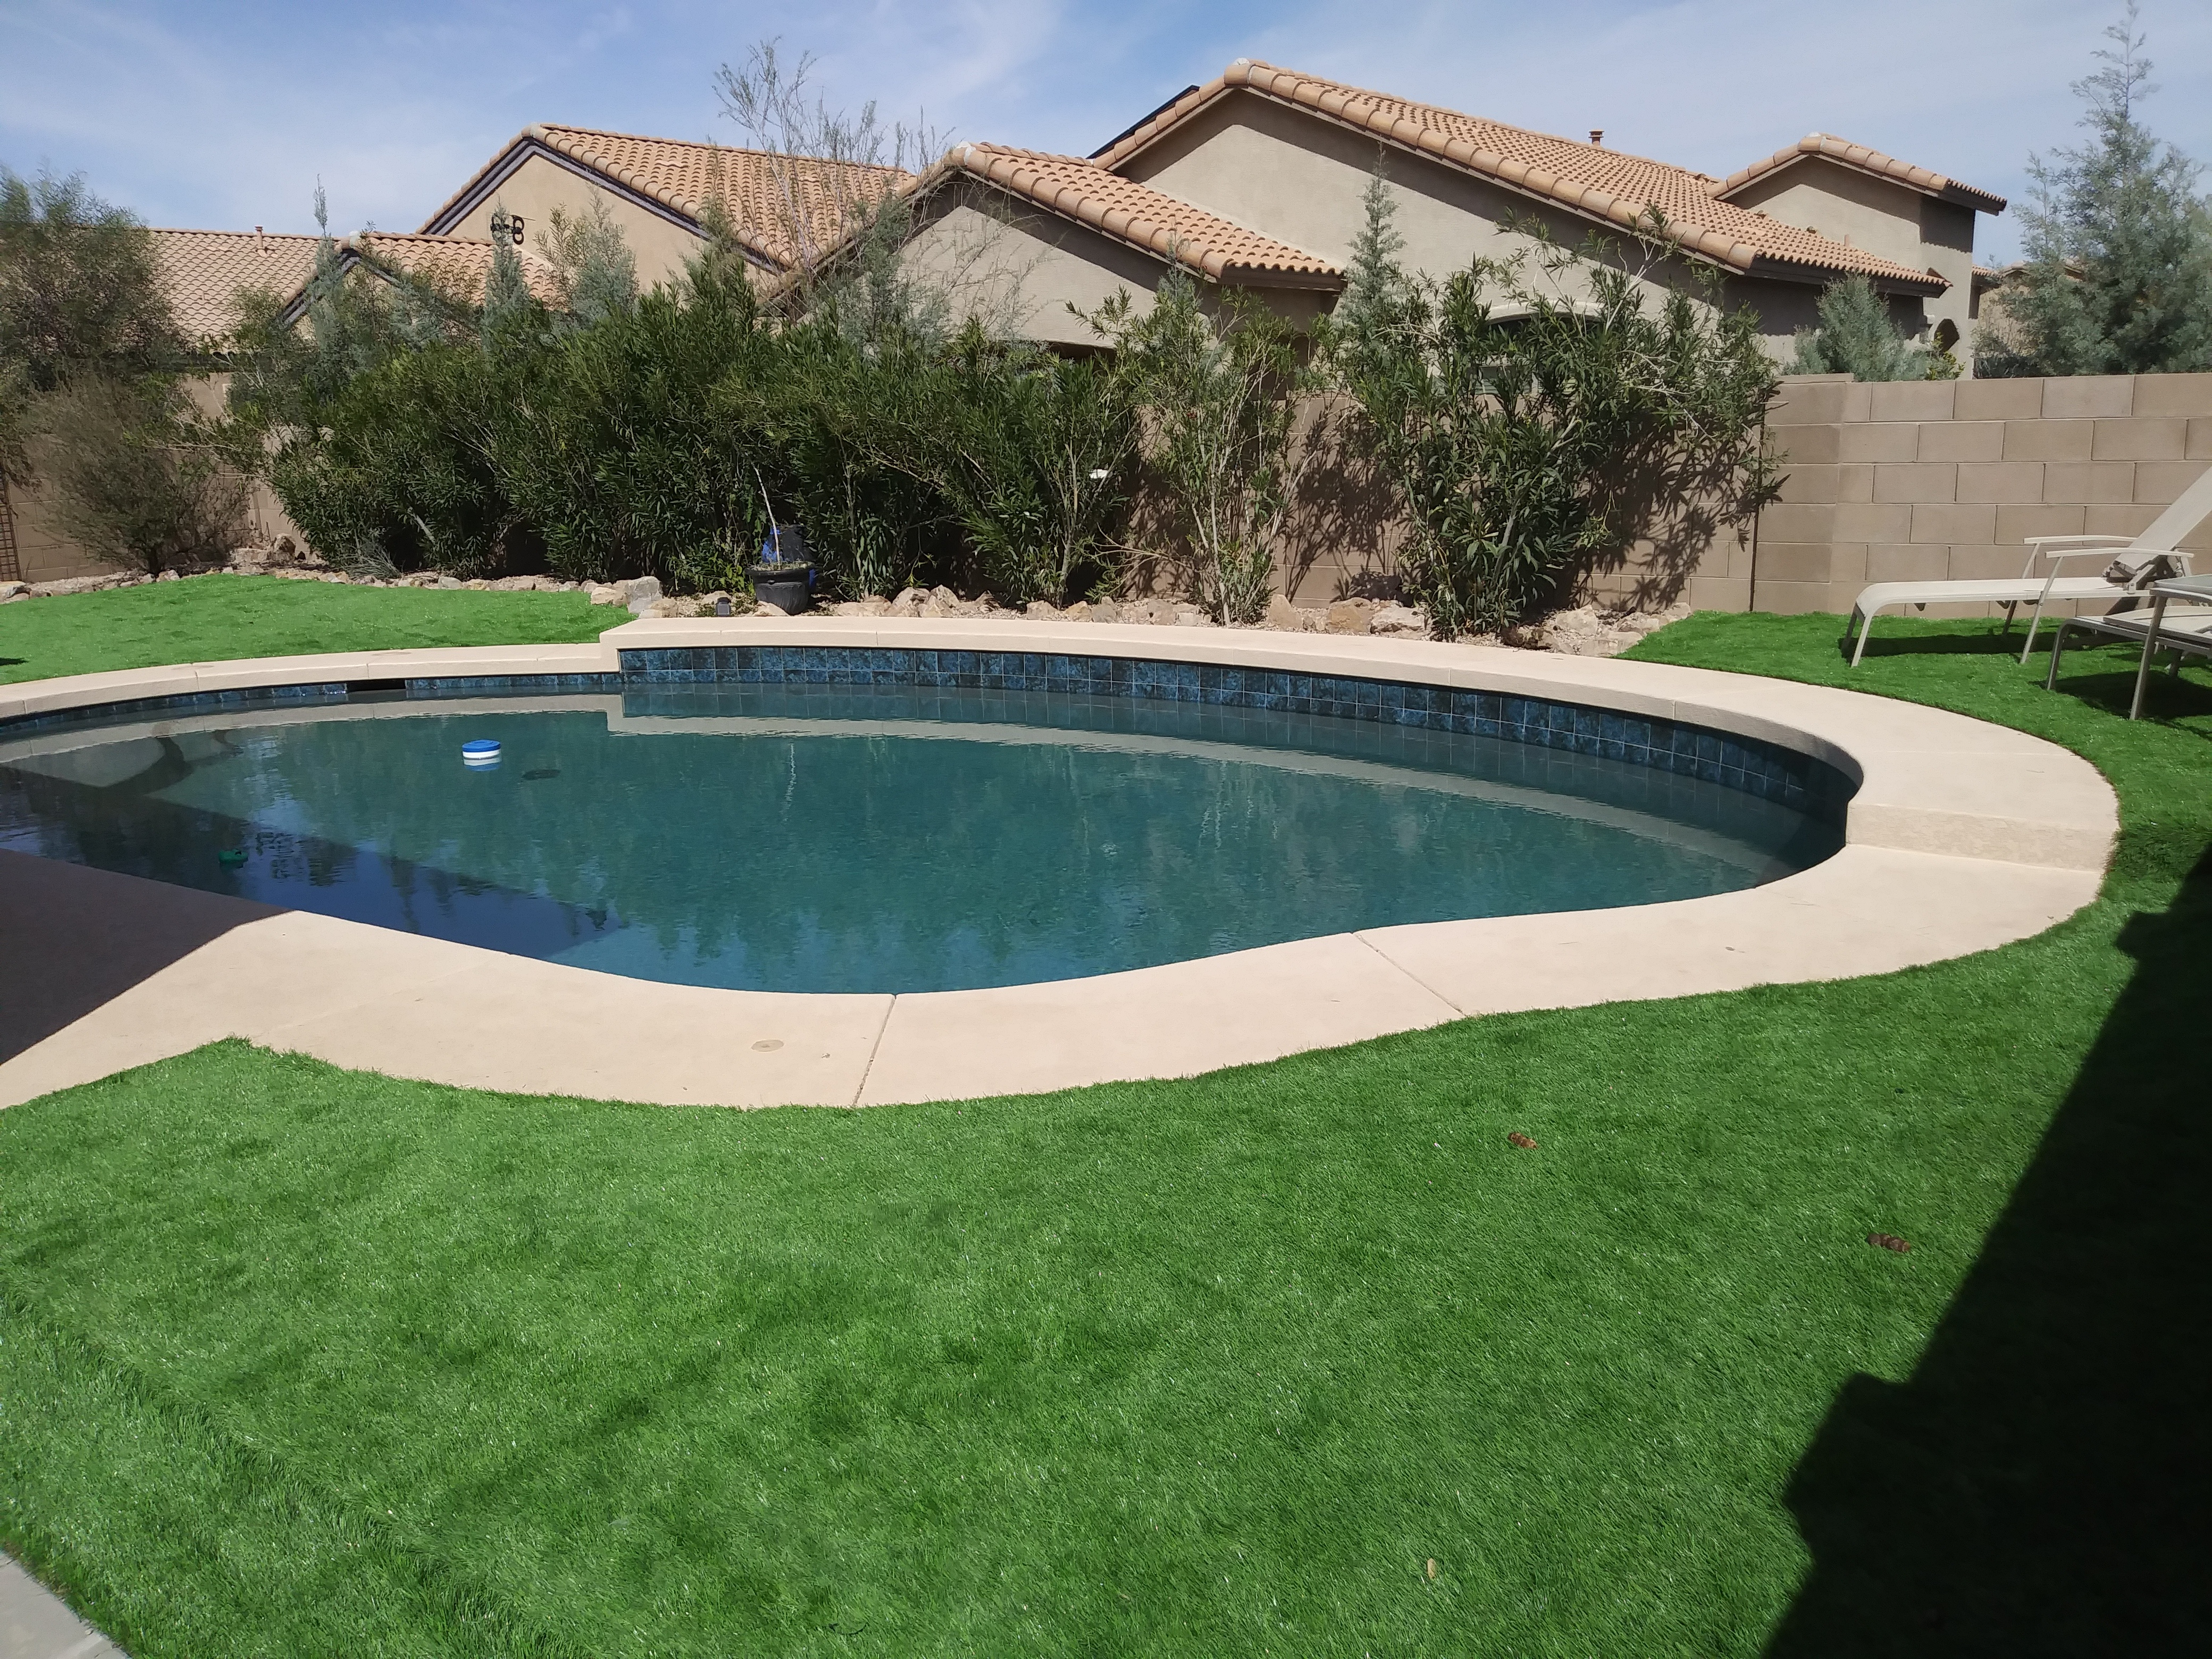 Pool Build Highlight: The Cross Family of Marana, AZ